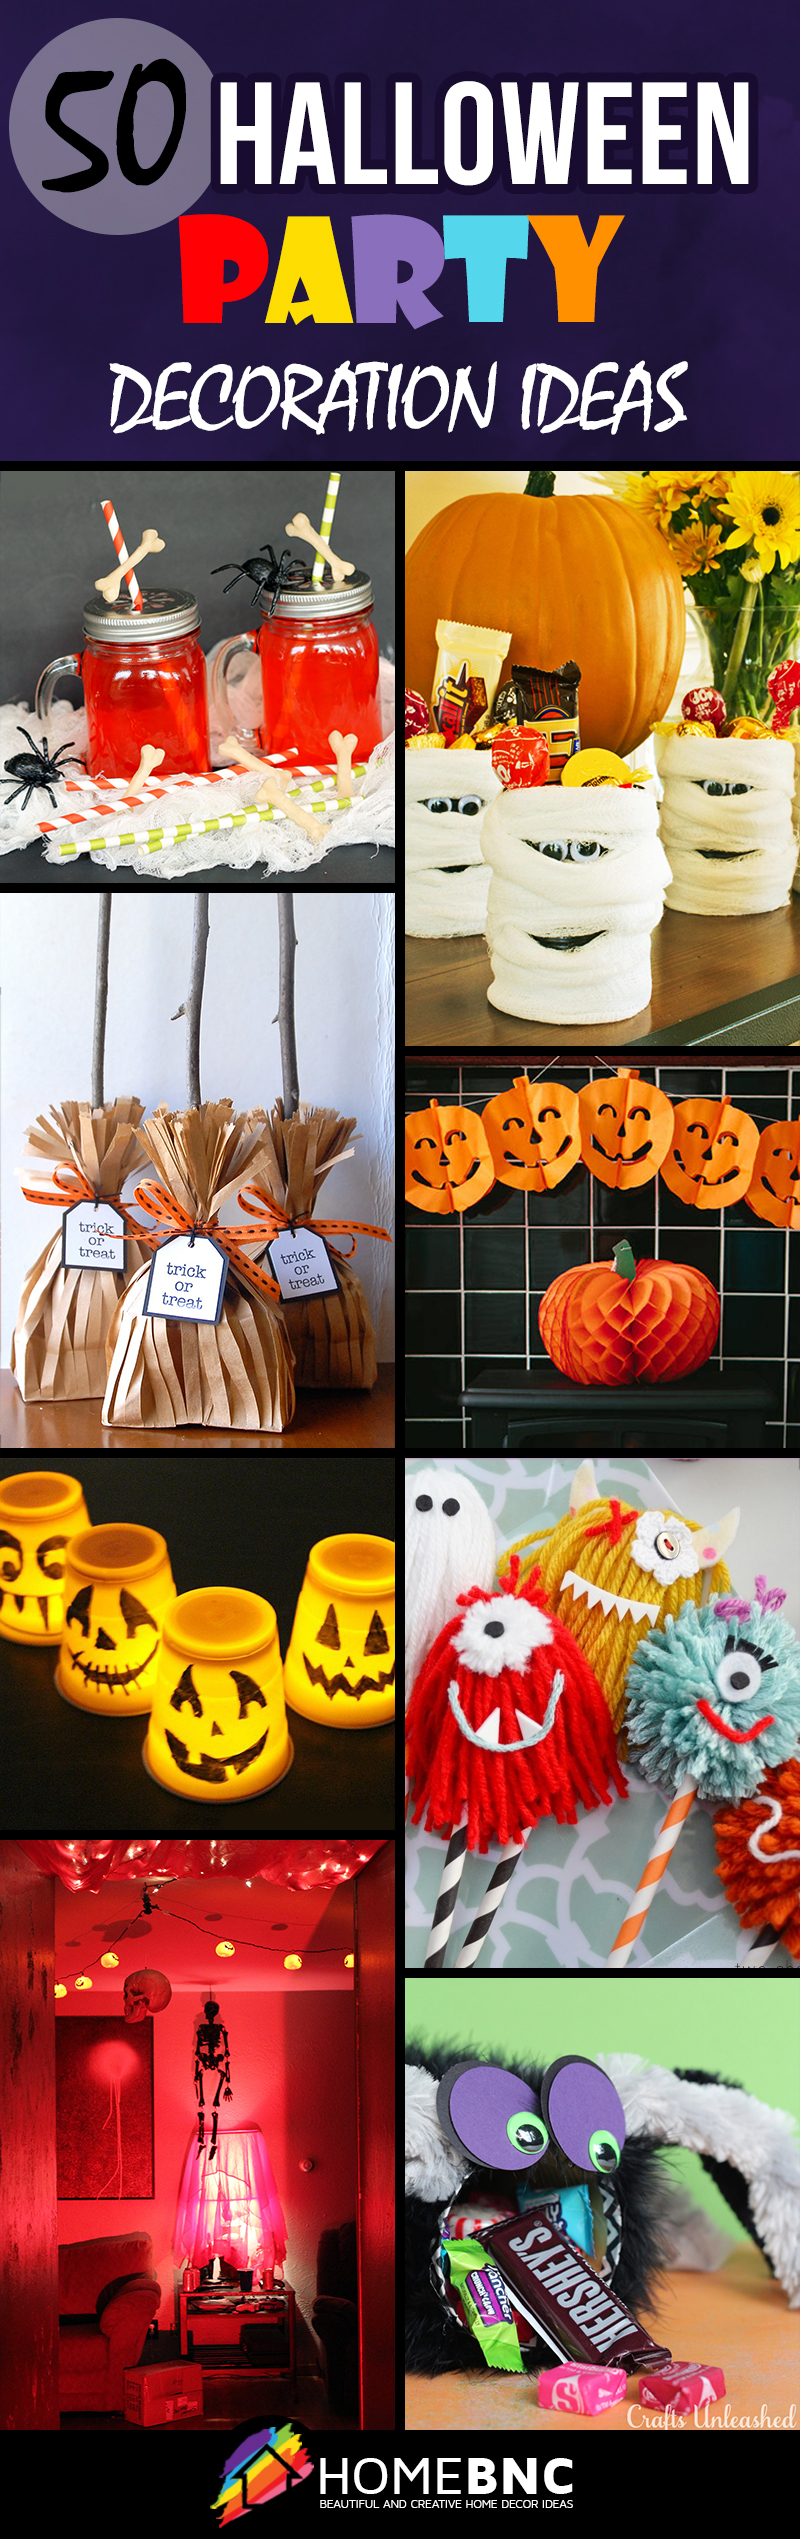 Halloween party decoration ideas to make - Halloween Party Decorations